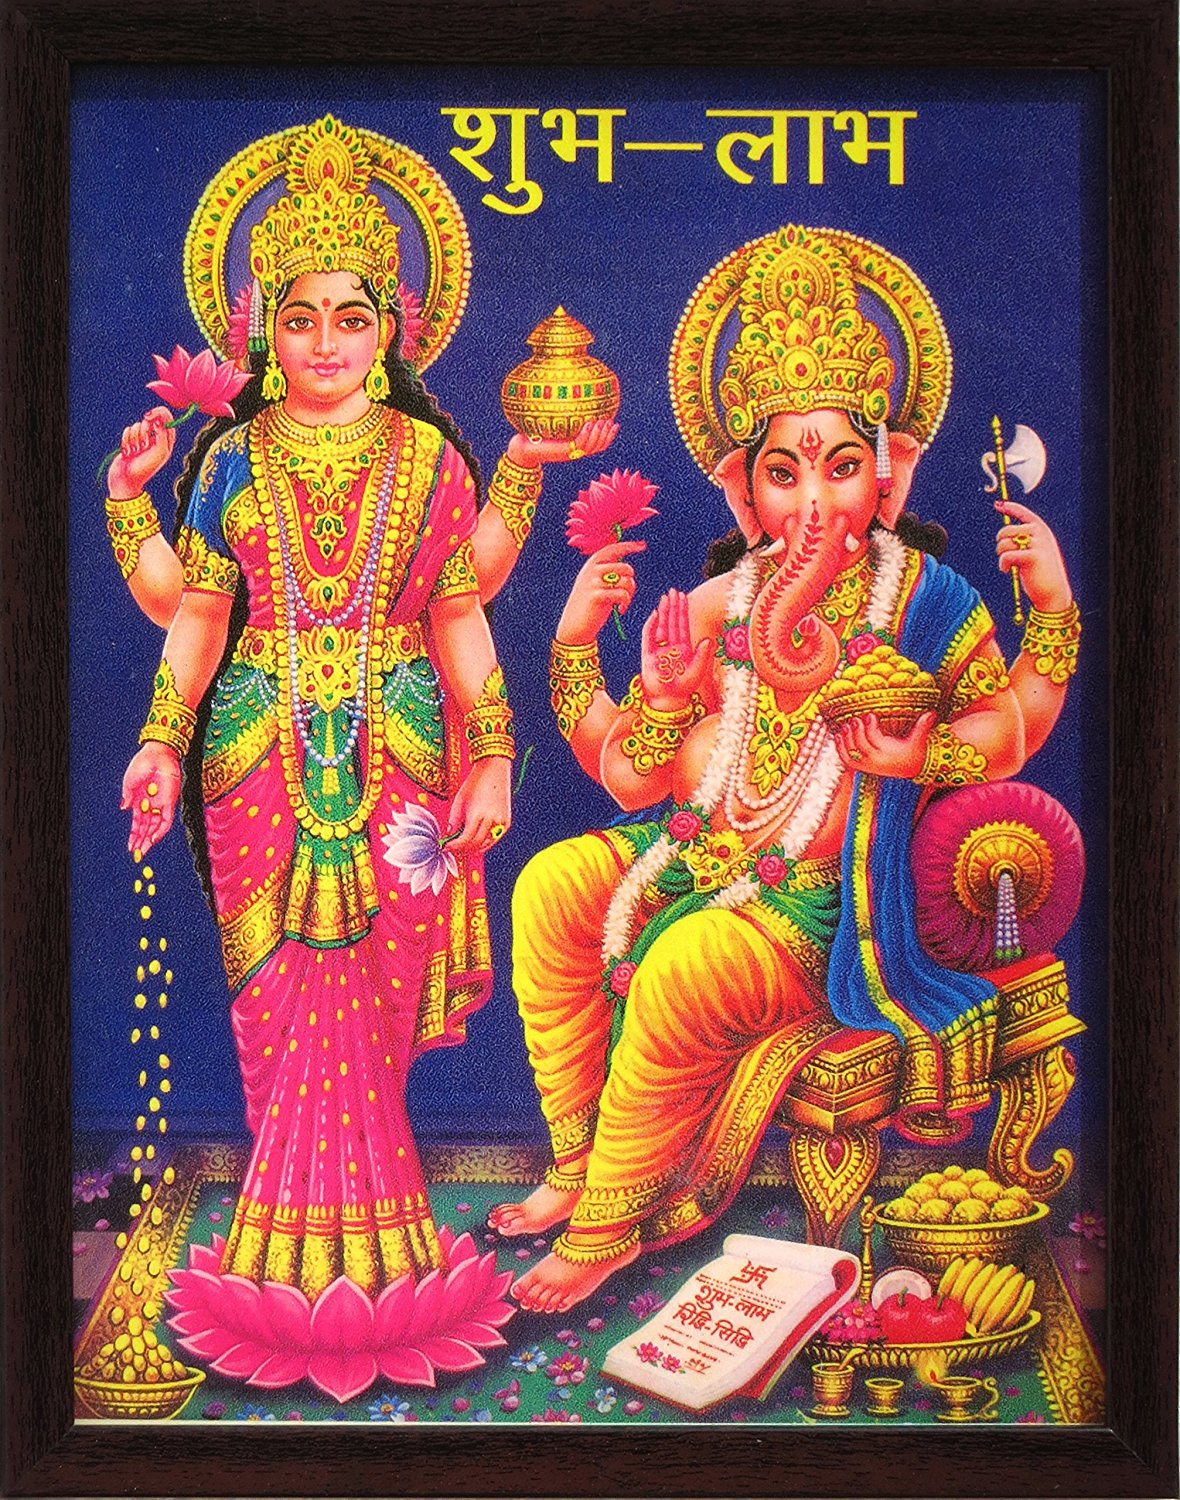 Goddess Maa Laxmi and Lord Ganesha giving blessings , poster painting in wood craft frame, must for ever home / office / religious and gift purpose